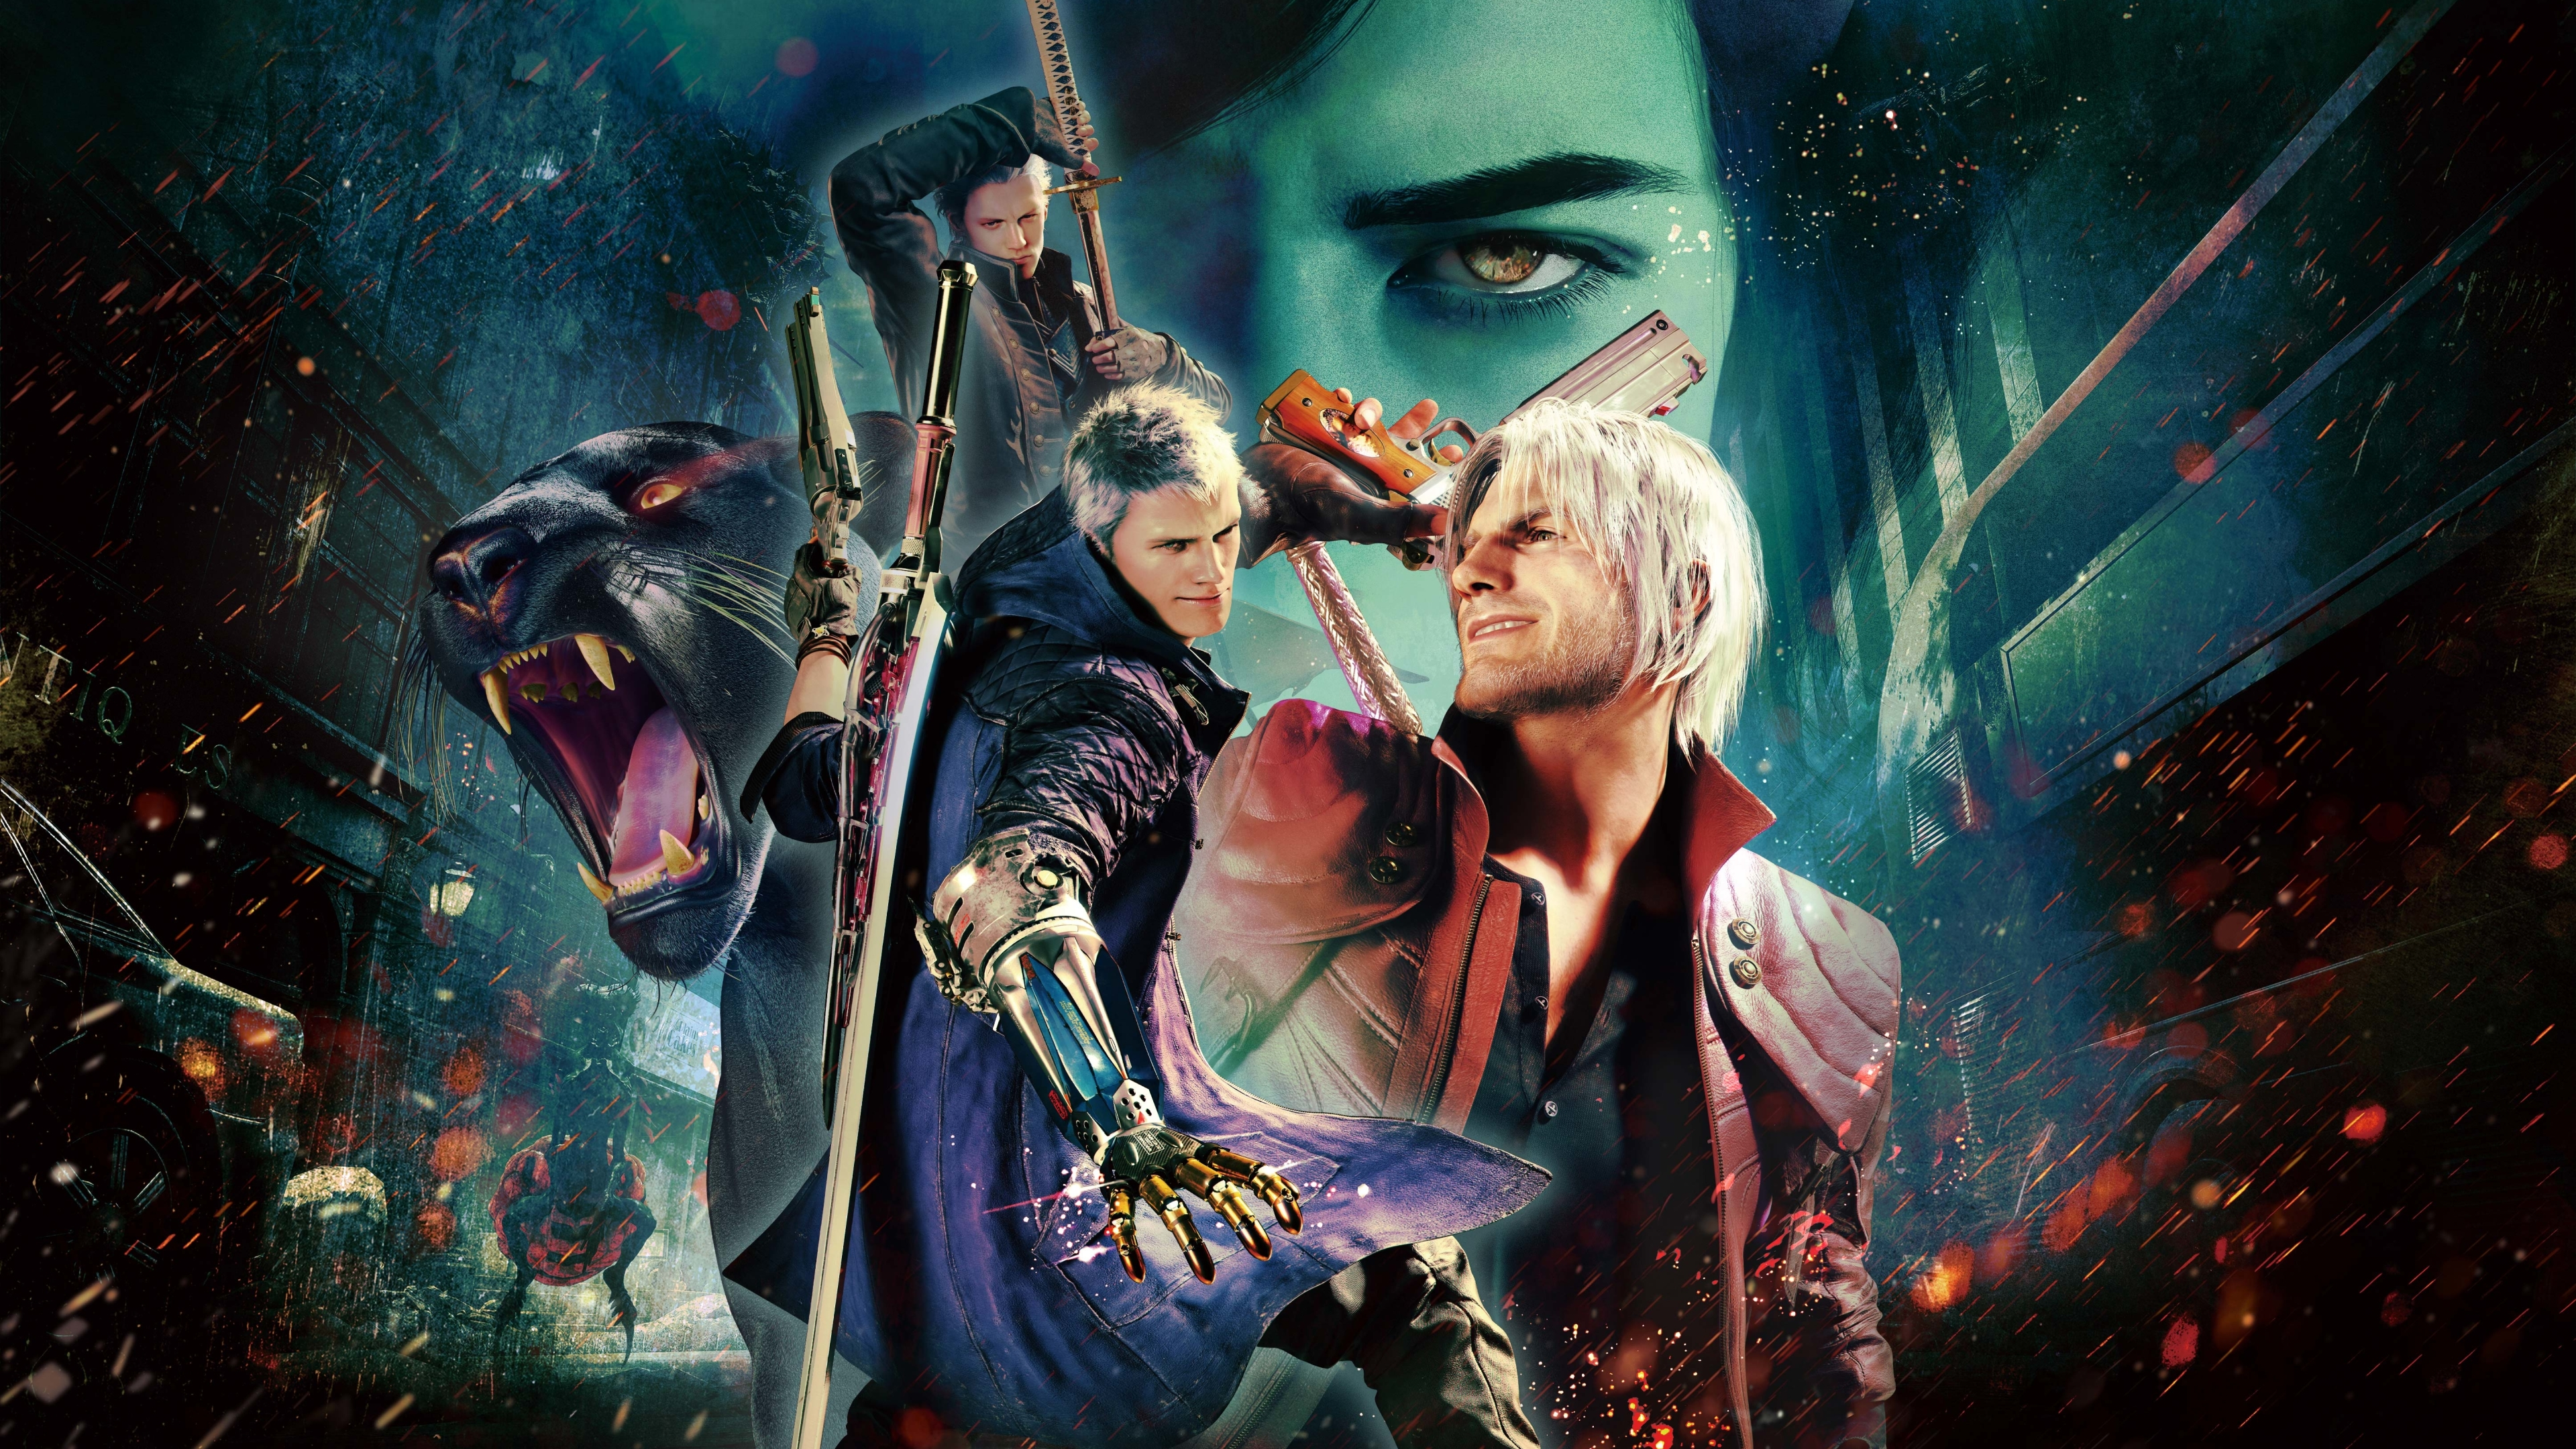 3840x2160 Devil May Cry 5 Special Edition 5K 4K Wallpaper ...